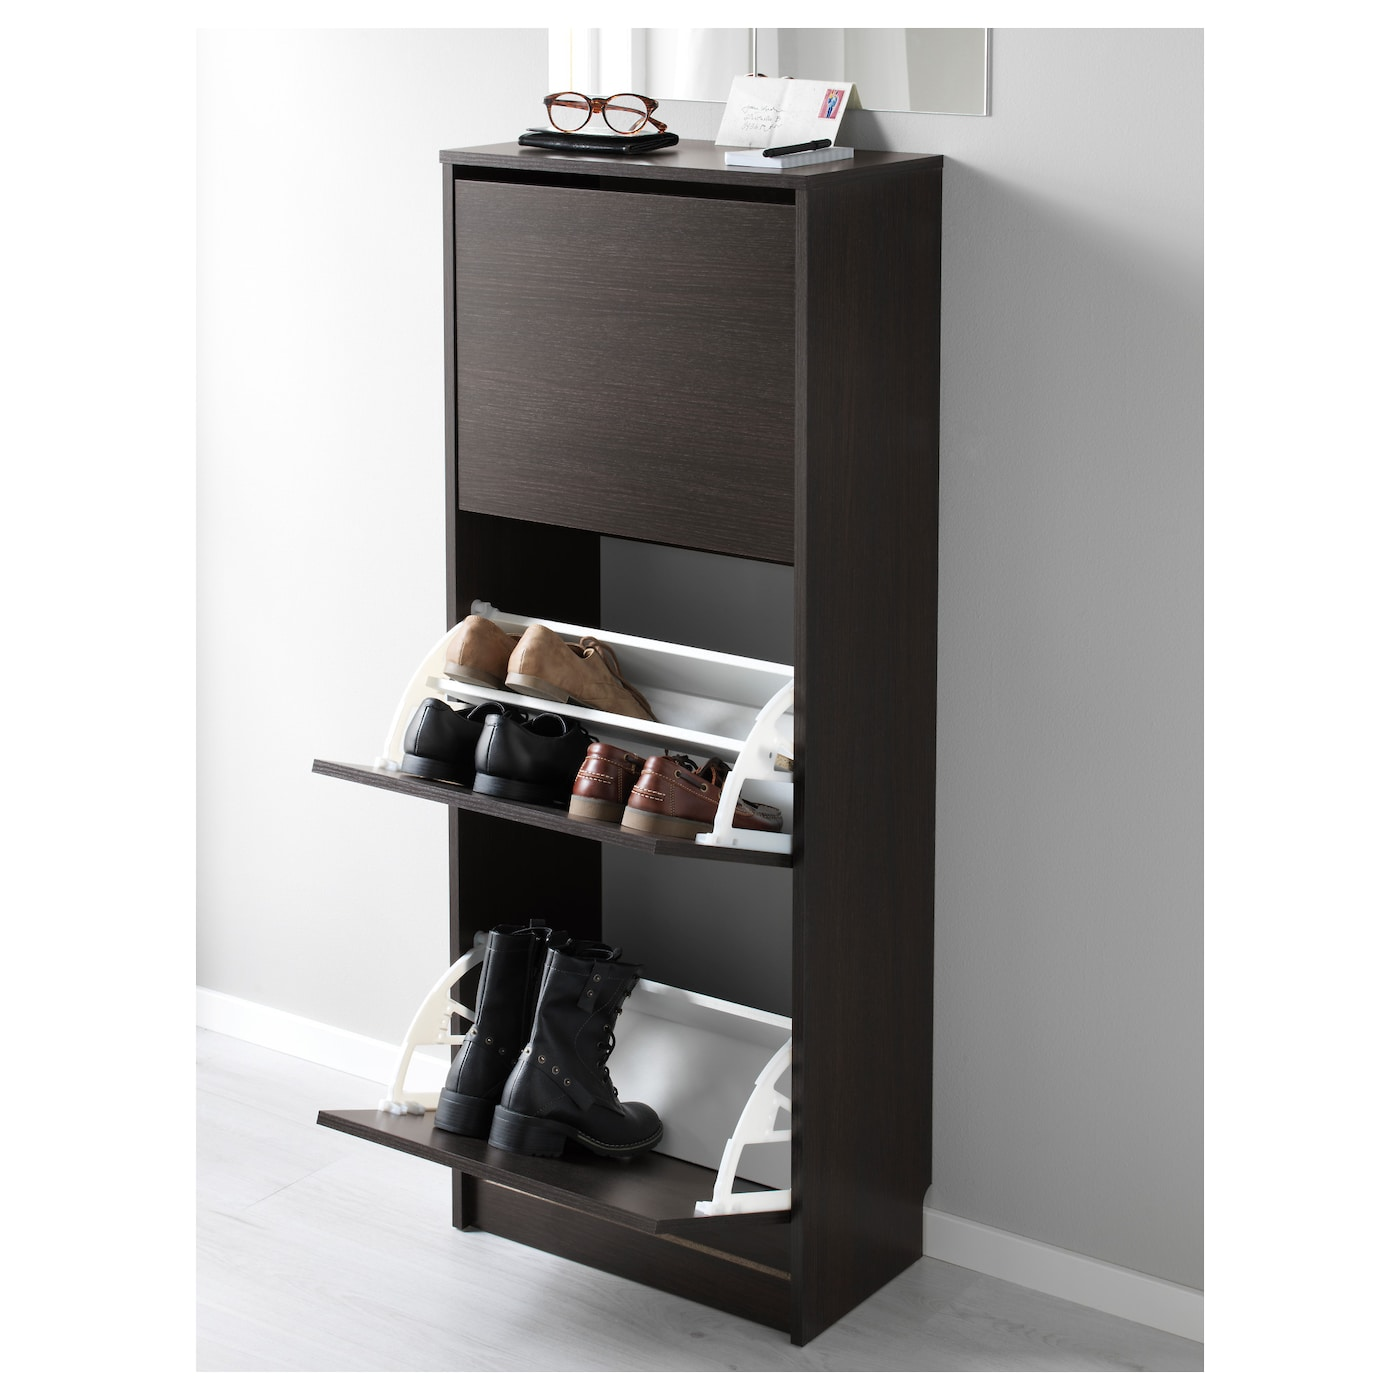 bissa armoire chaussures 3 casiers noir brun 49x135 cm ikea. Black Bedroom Furniture Sets. Home Design Ideas